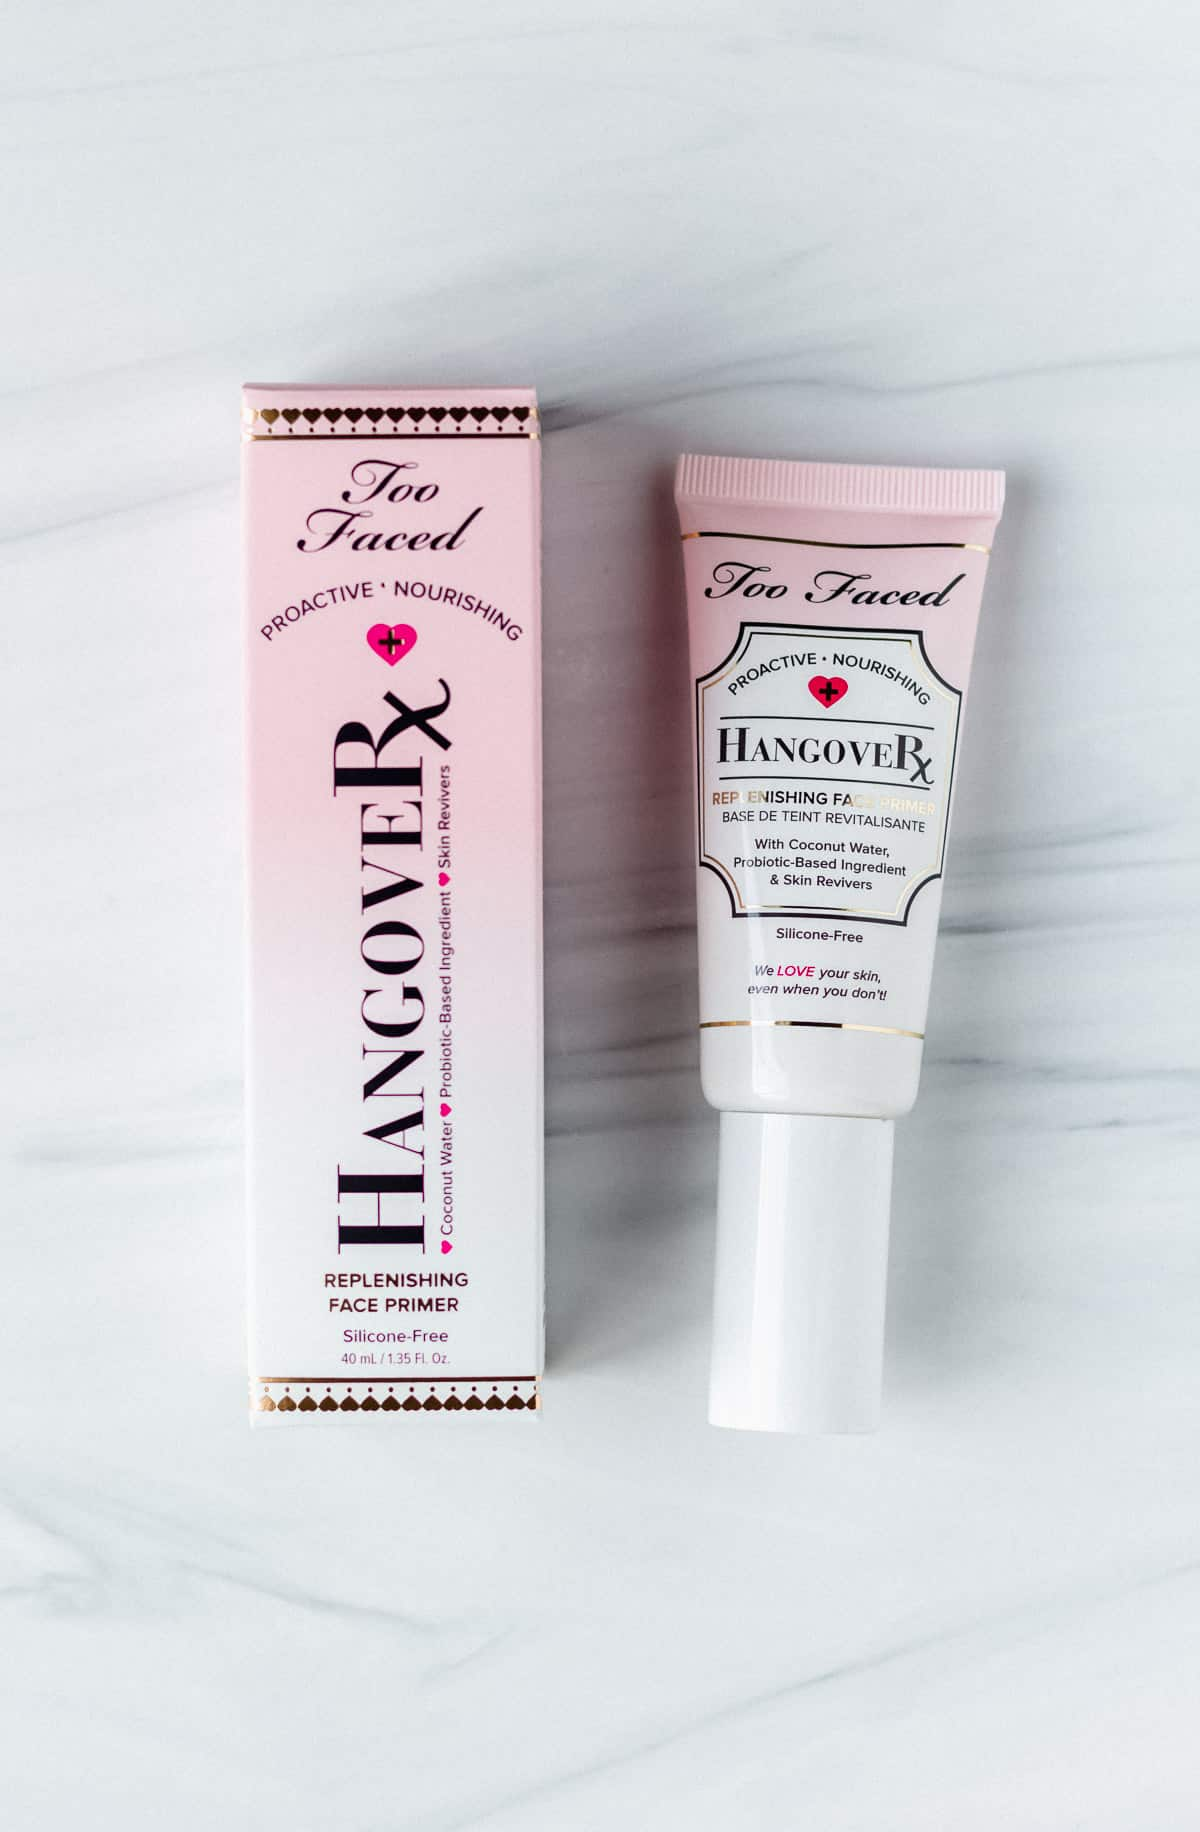 Too faced hangover primer box and tube on a white background